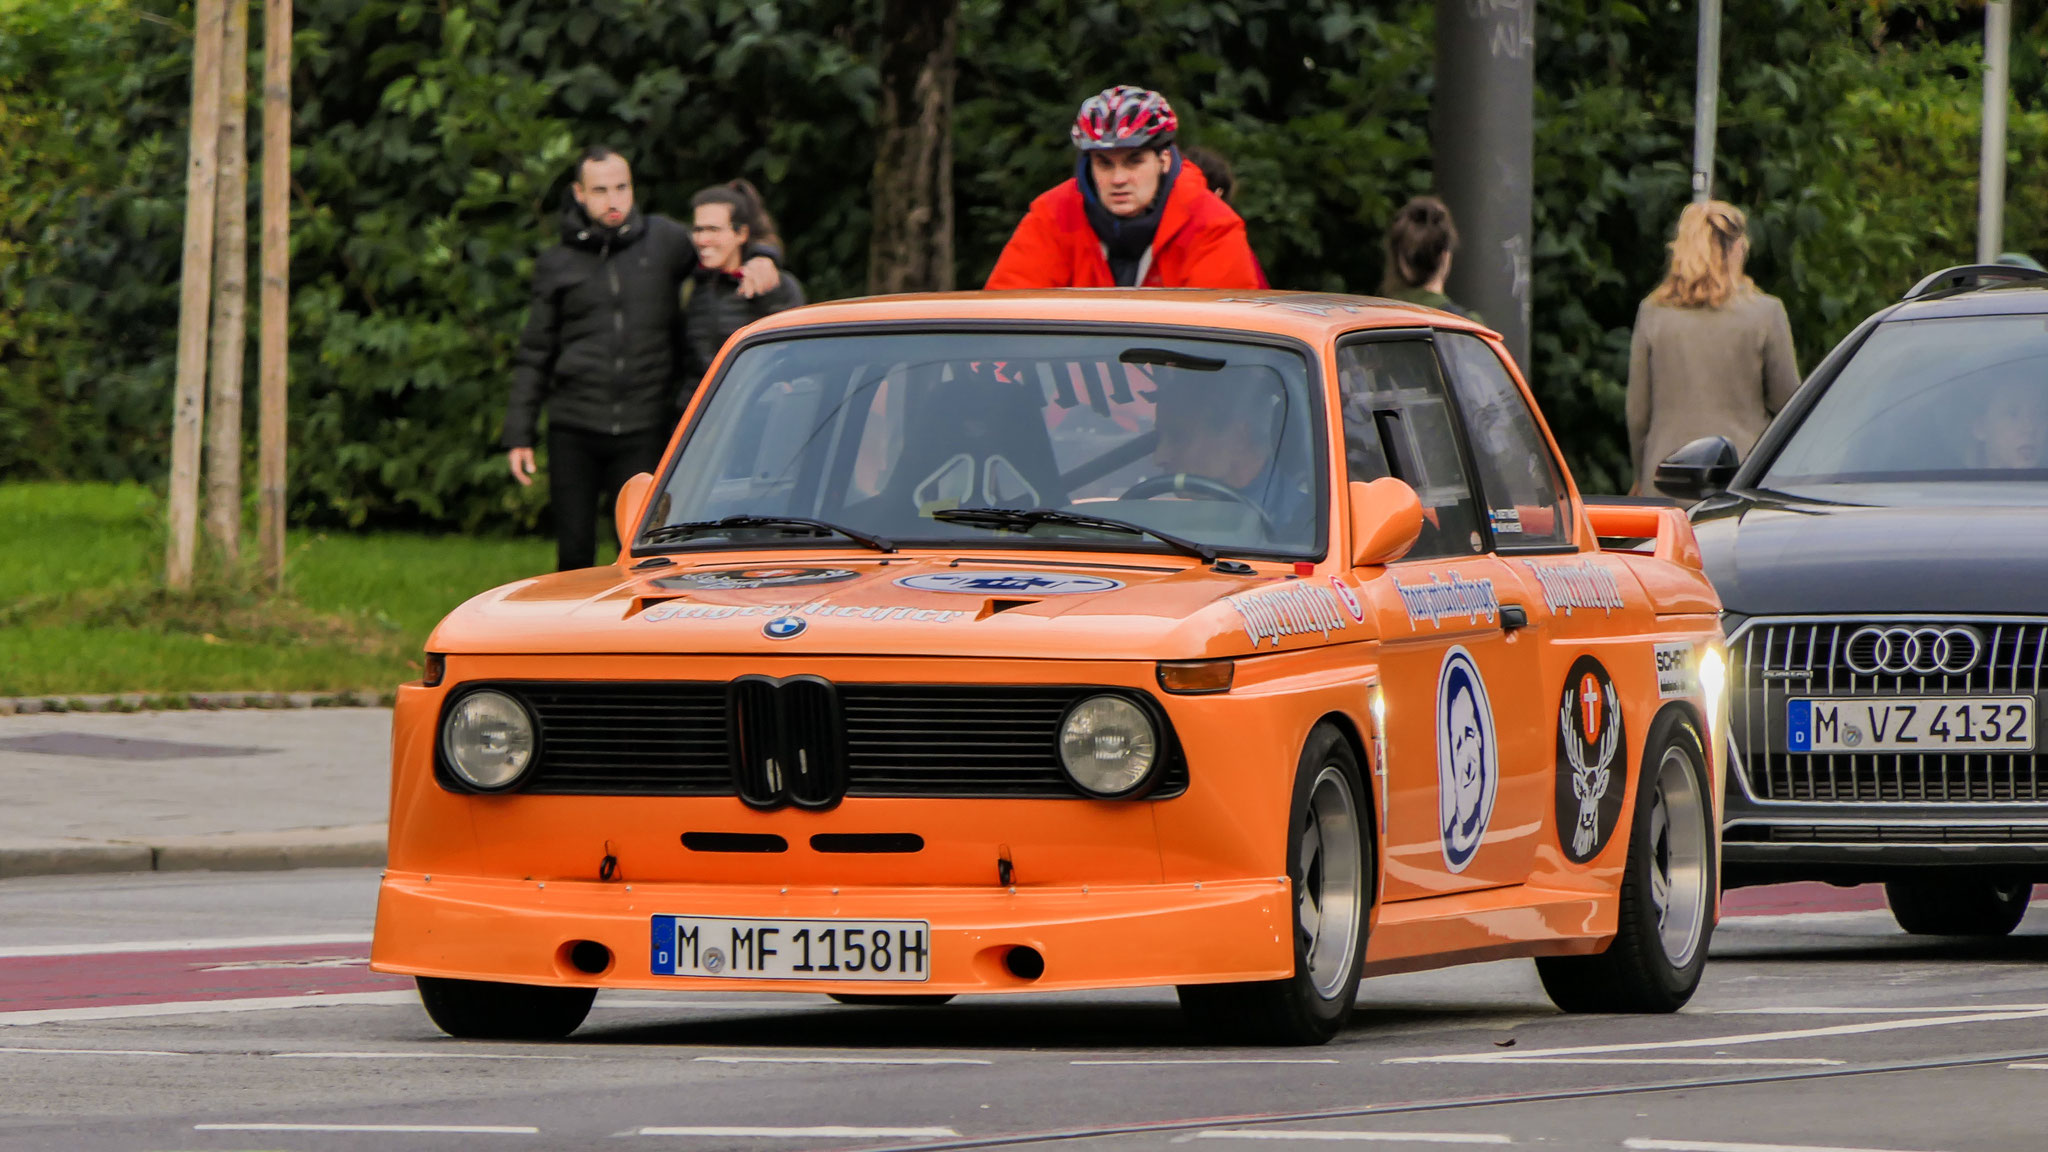 BMW 2002 Rally - M-MF-1158H